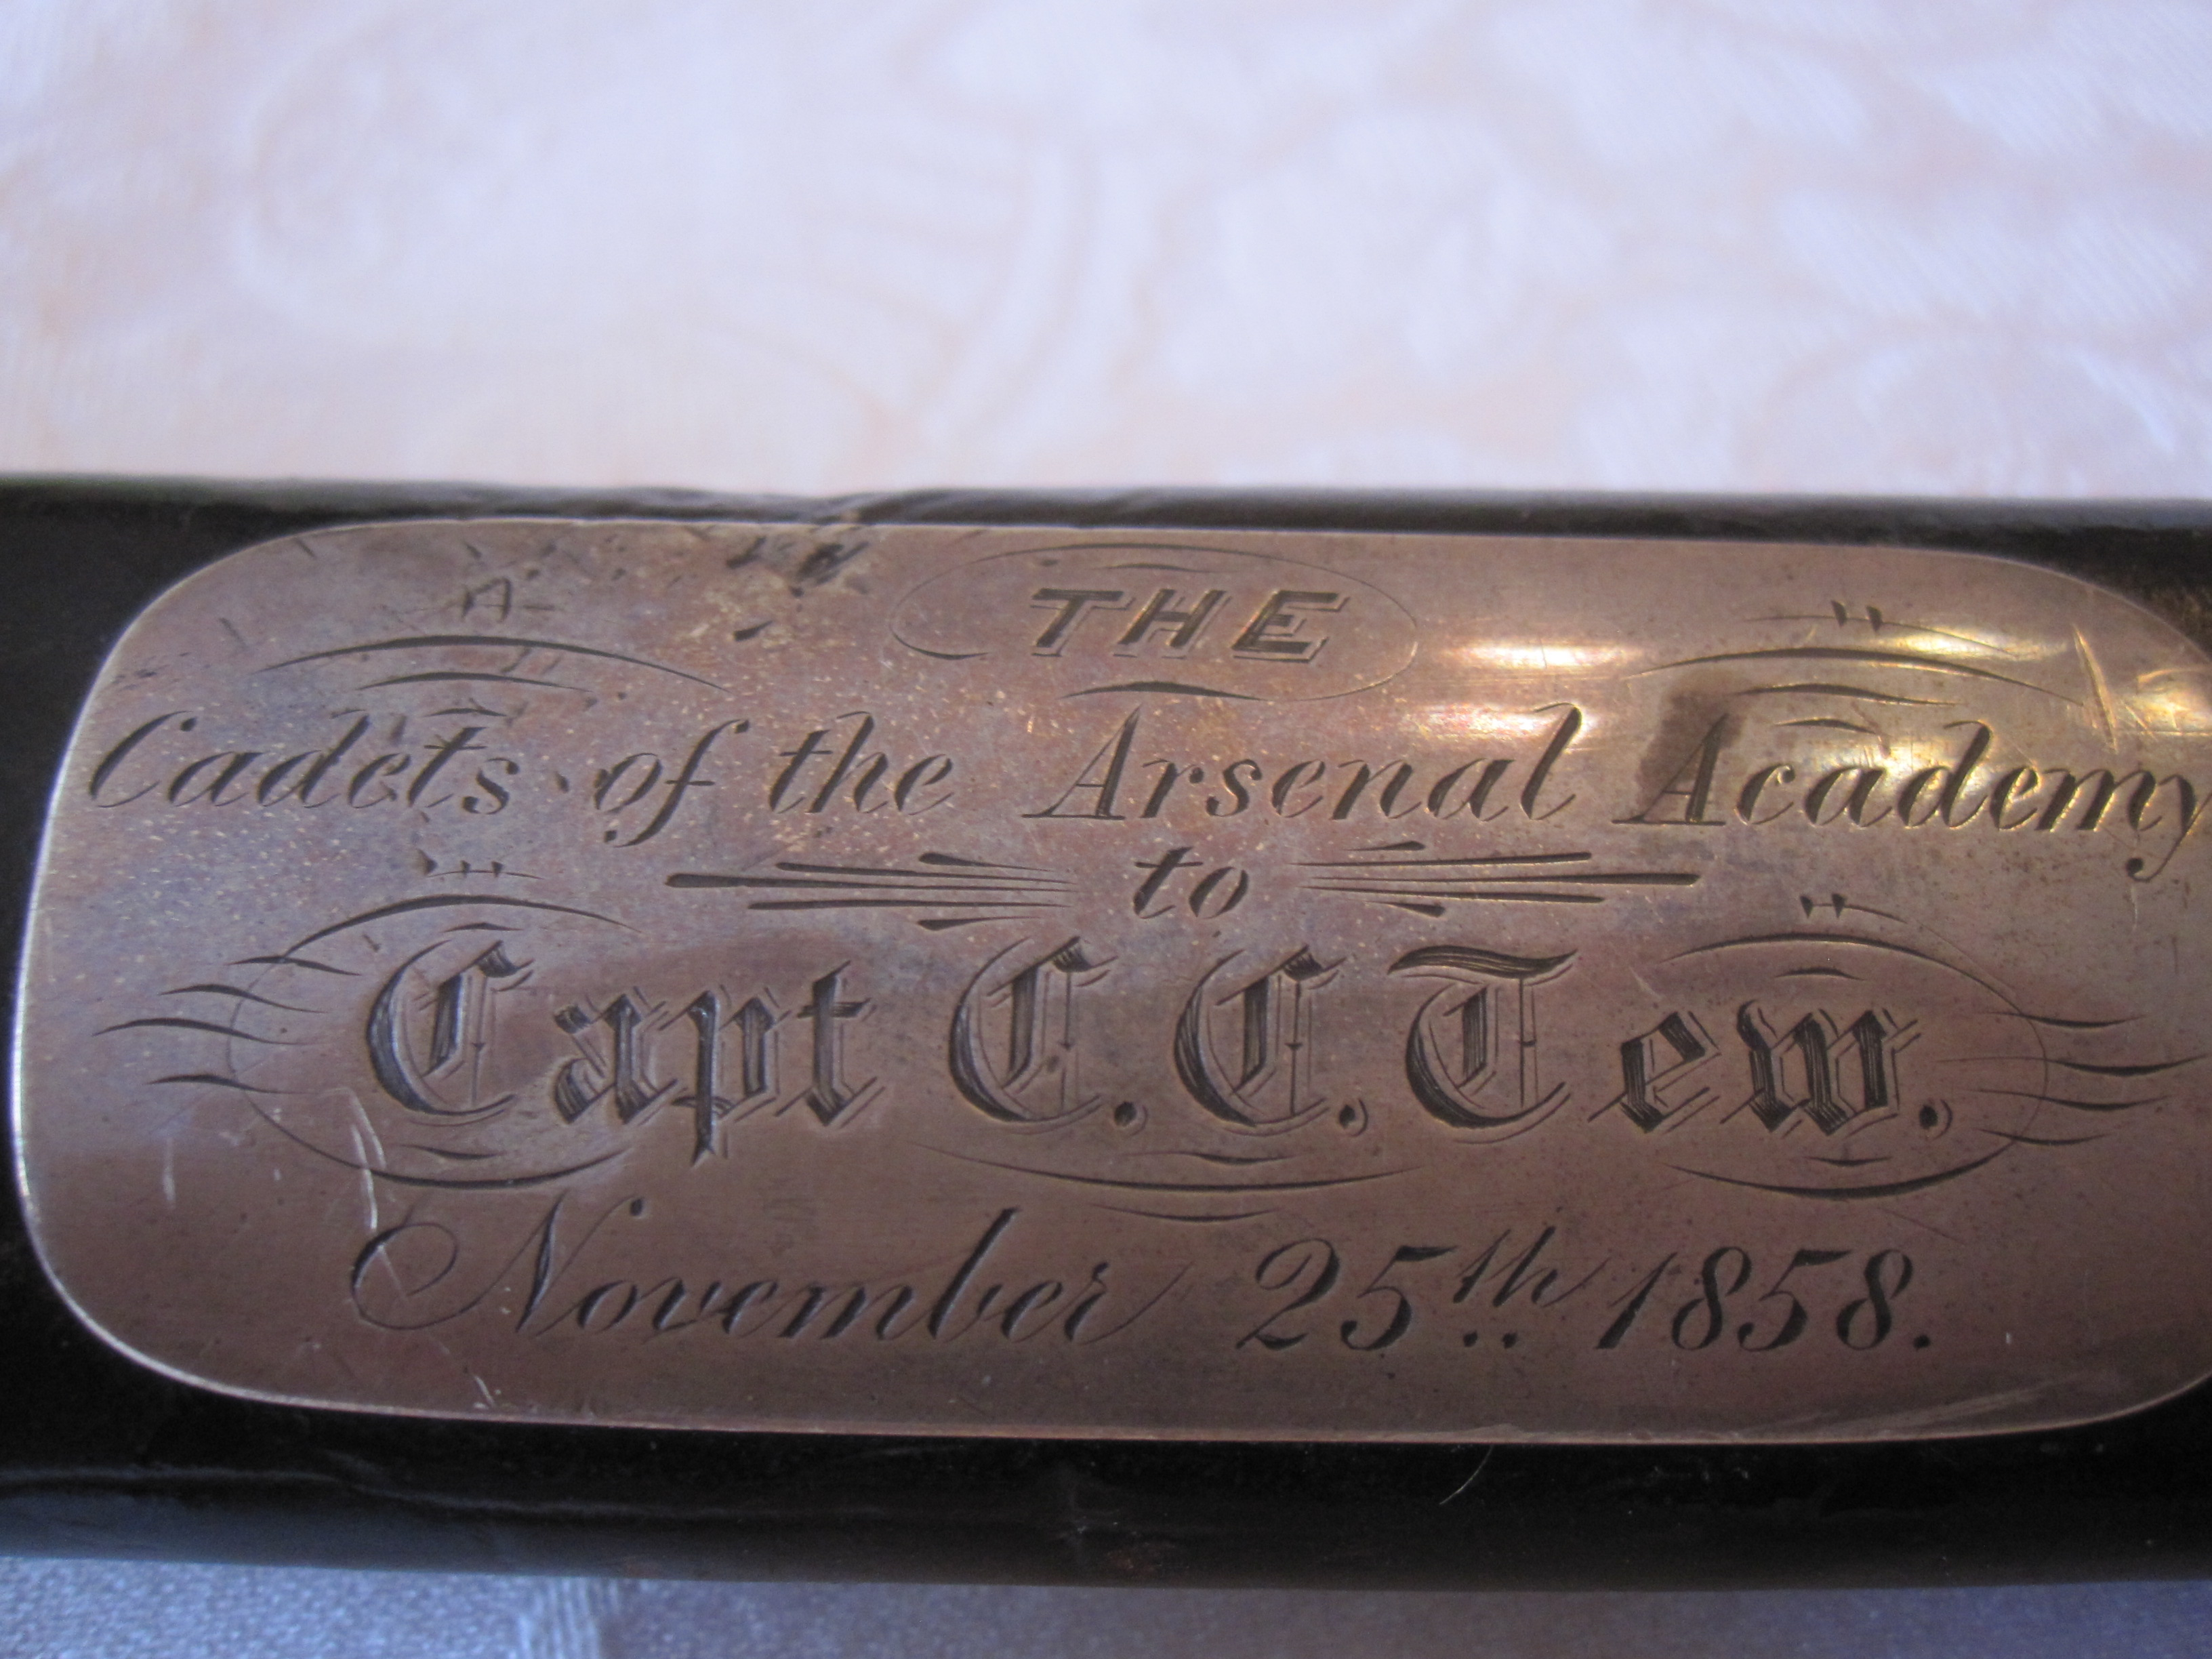 Scabbard Dedication plate